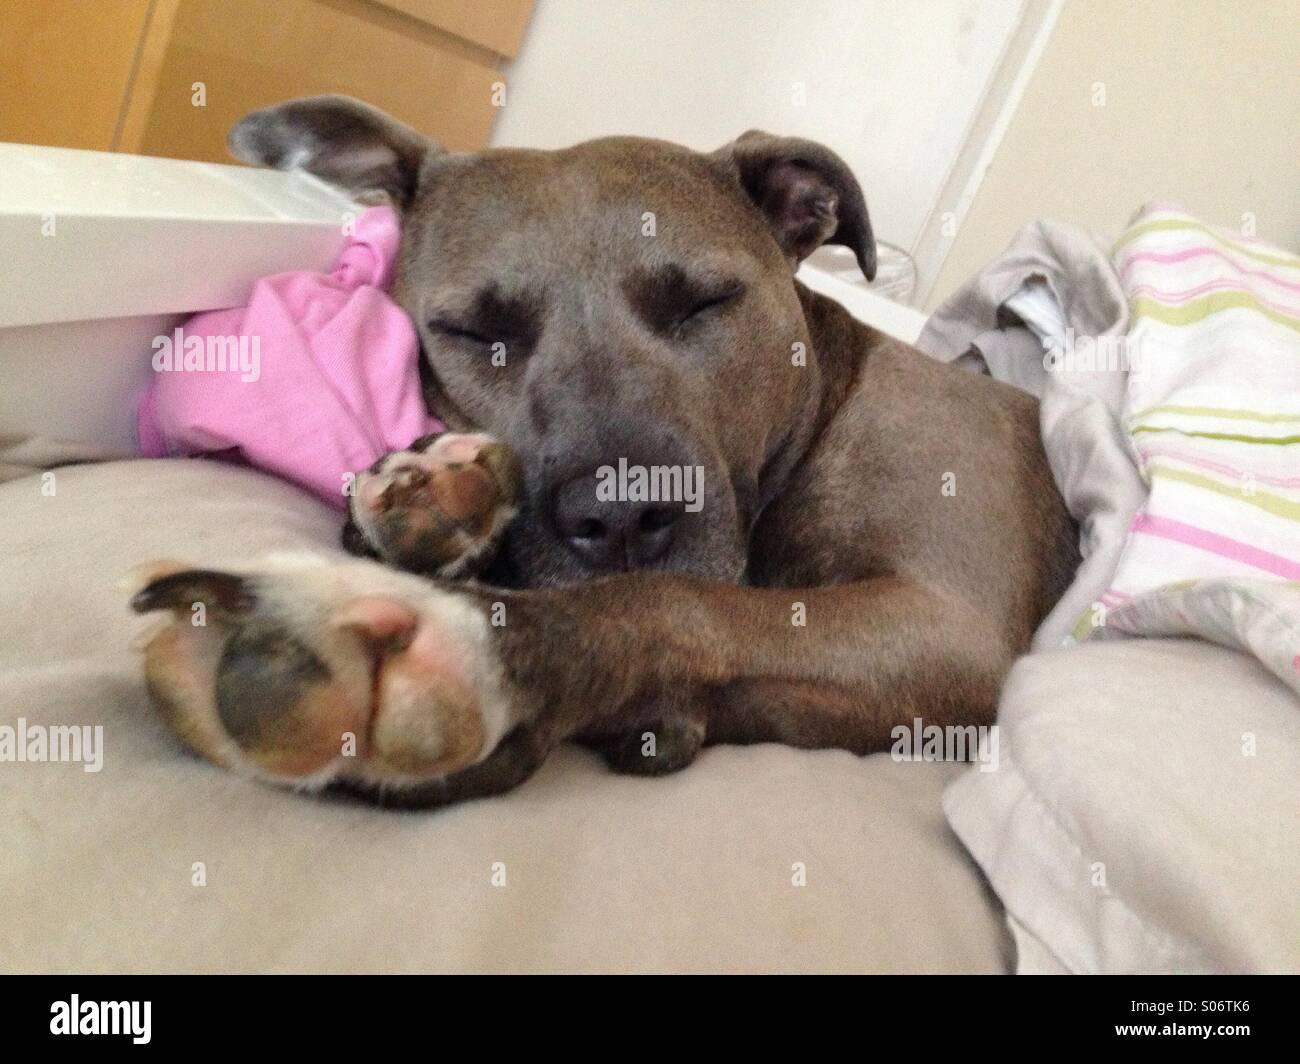 Dog snoozing in bed - Stock Image